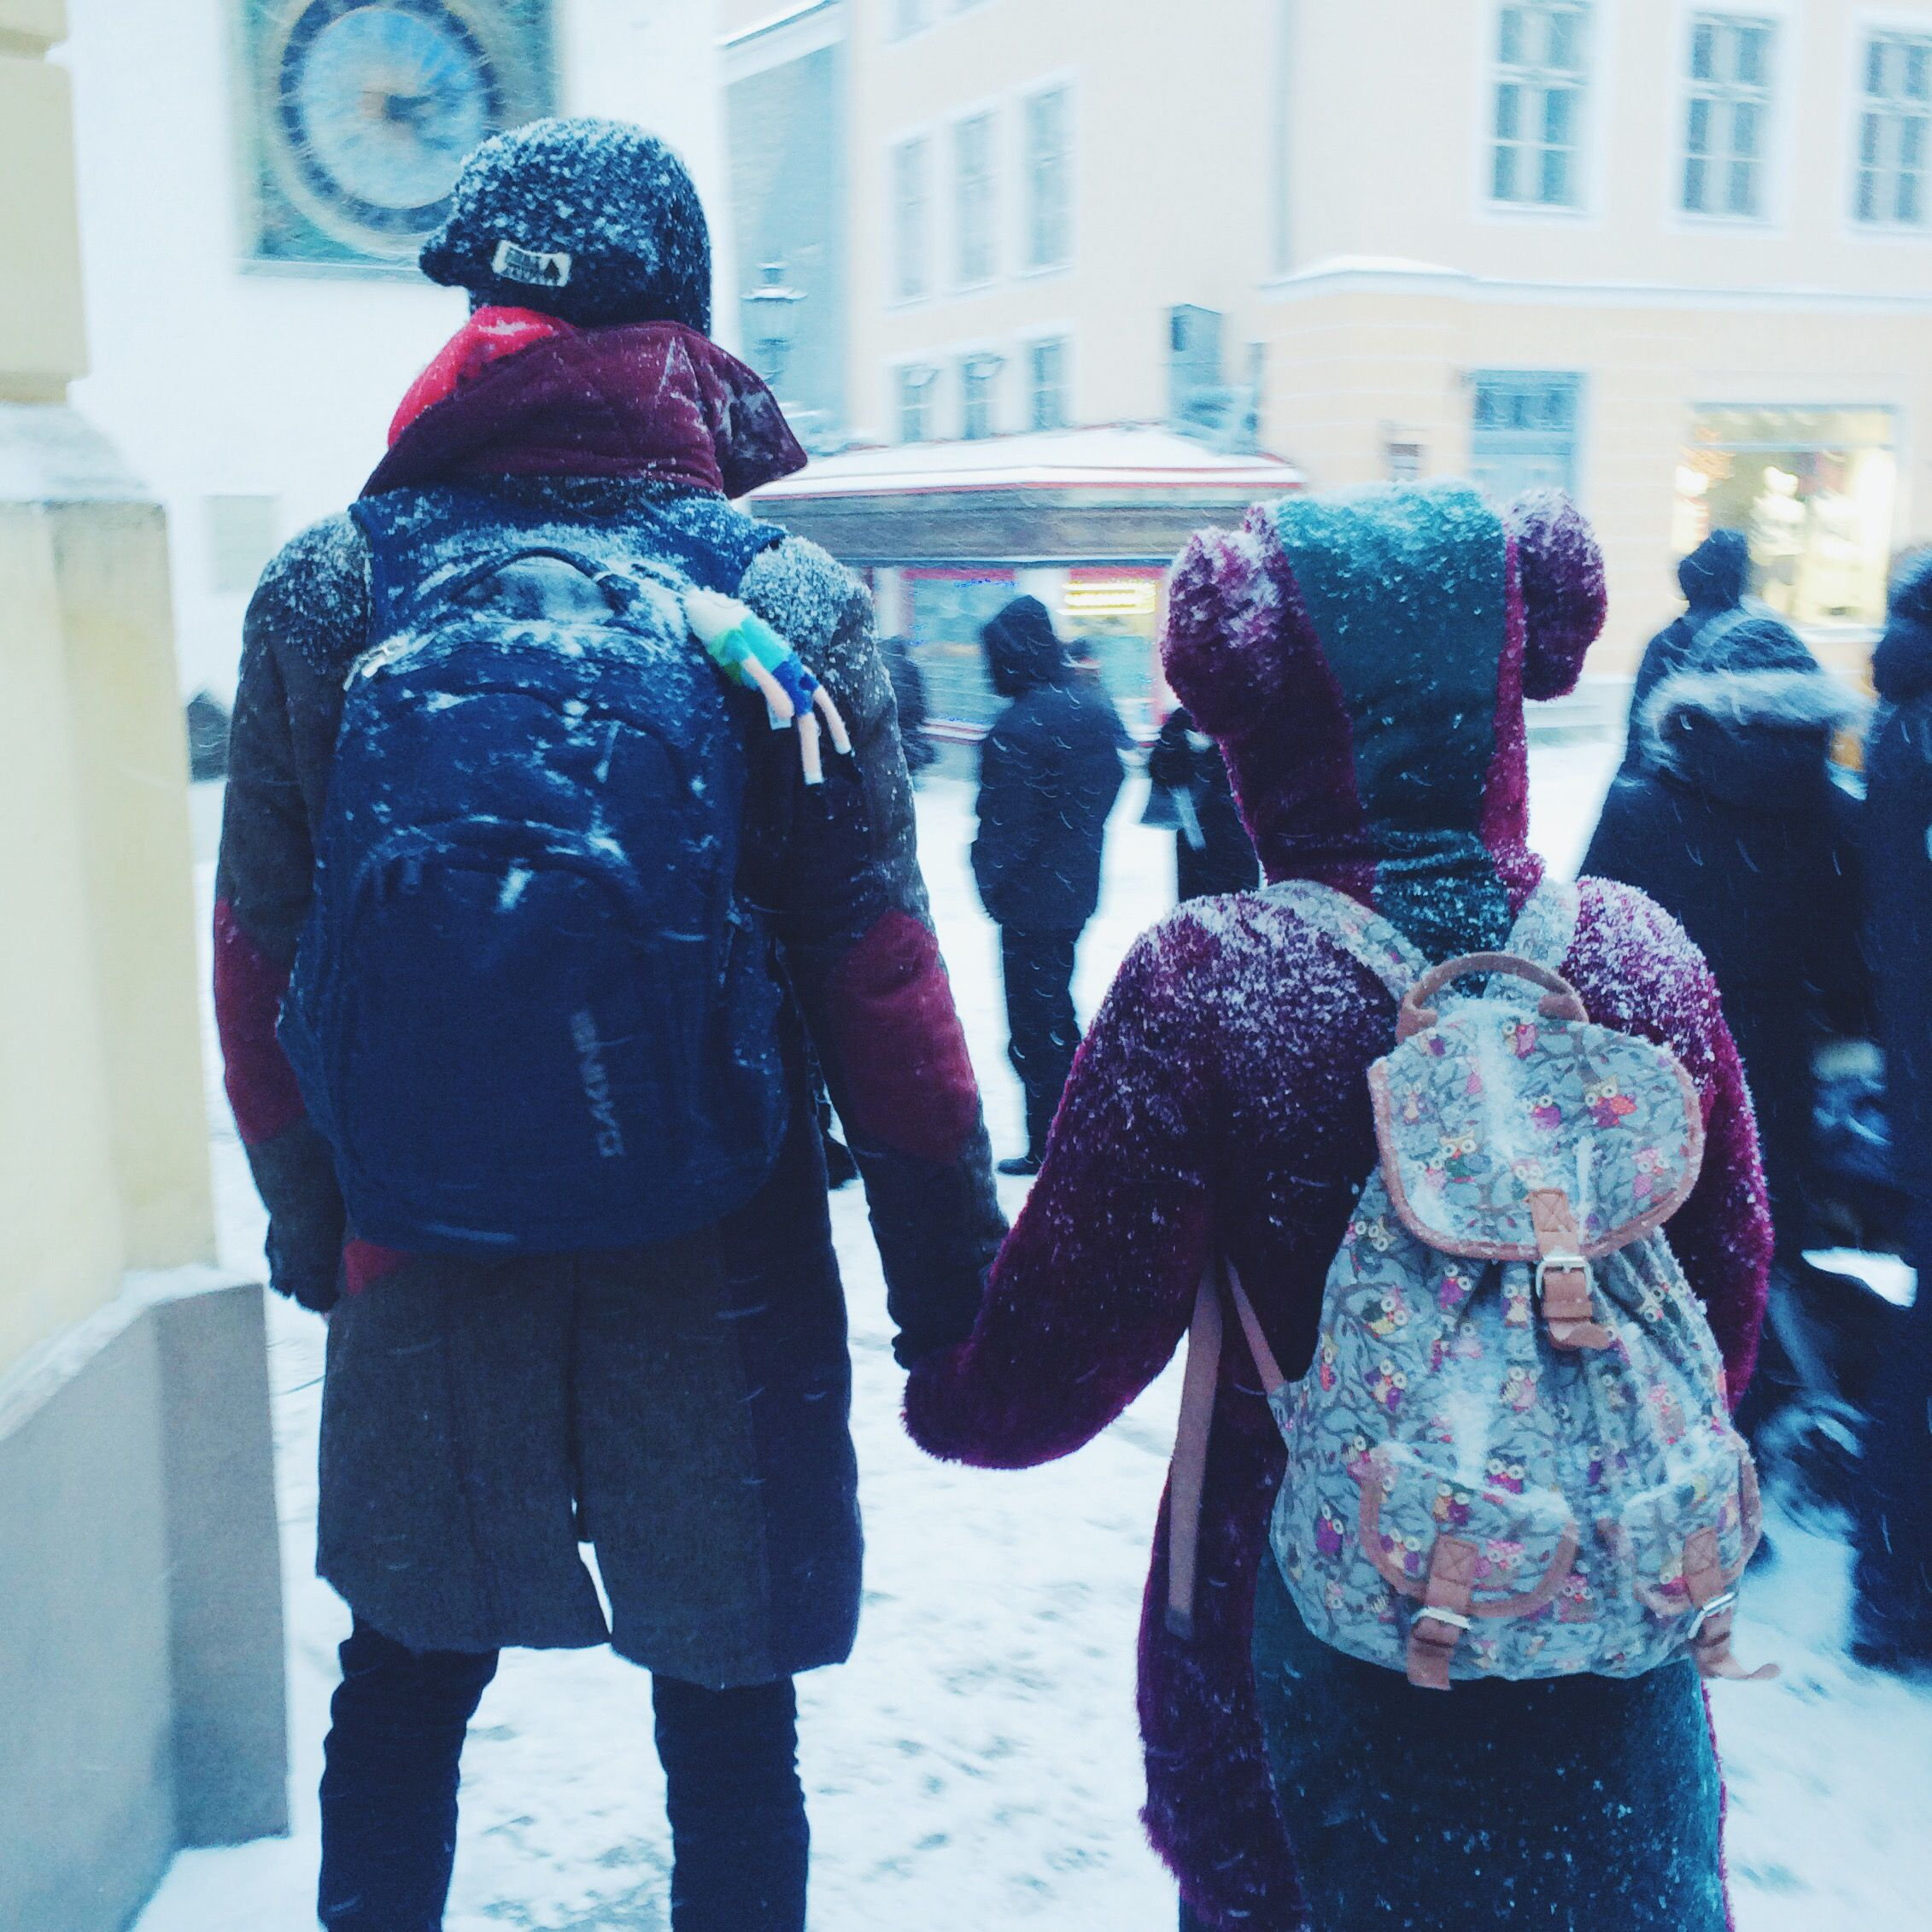 Right out of the fairytale and right into the snowy Old Town of Tallinn! #fashion #knittedhat #parka #elbowpatches #maroon #stuffedtoy #teddybearcoat #teddybear #printedbackbag #owls #backbag #outofthefairytale #fairytale #streetstyle #tallinnstreetstyle #TSS